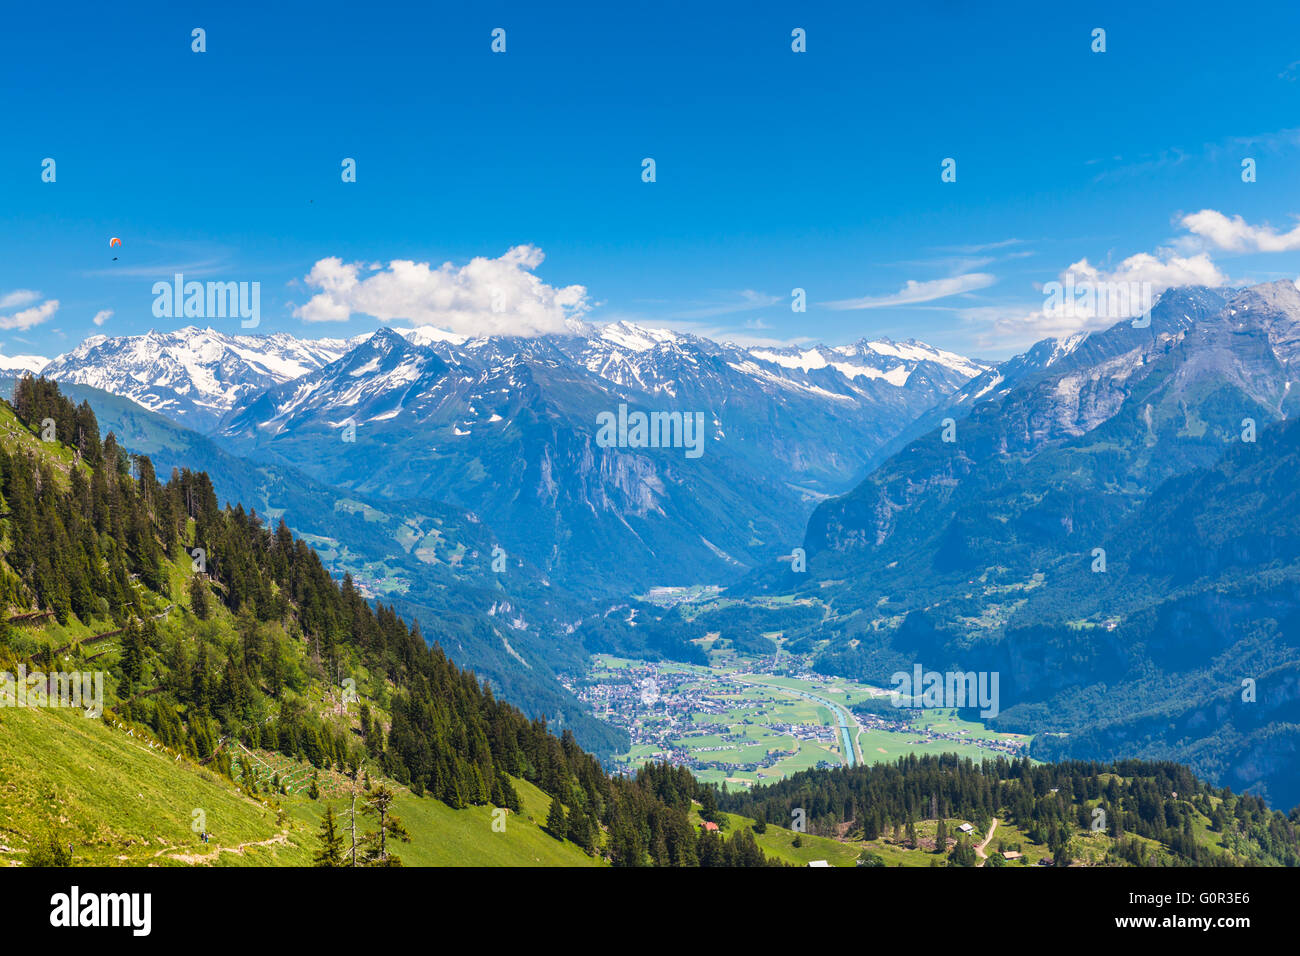 Panorama view on the hiking path on Bernese Oberland with mountain range of the alps, Switzerland. Stock Photo